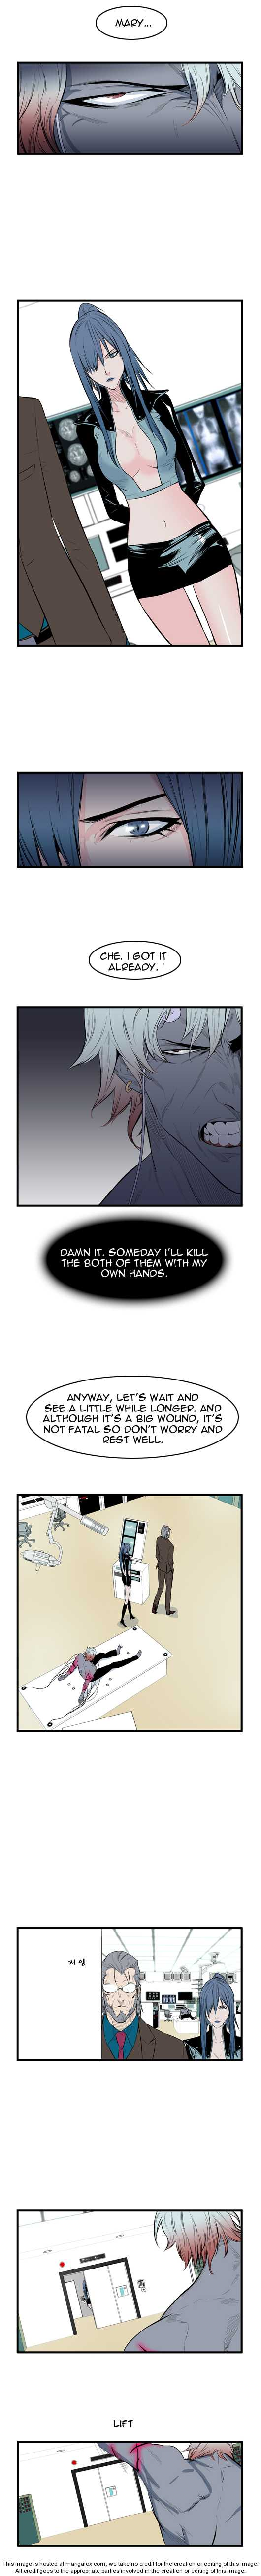 Noblesse 55 Page 2